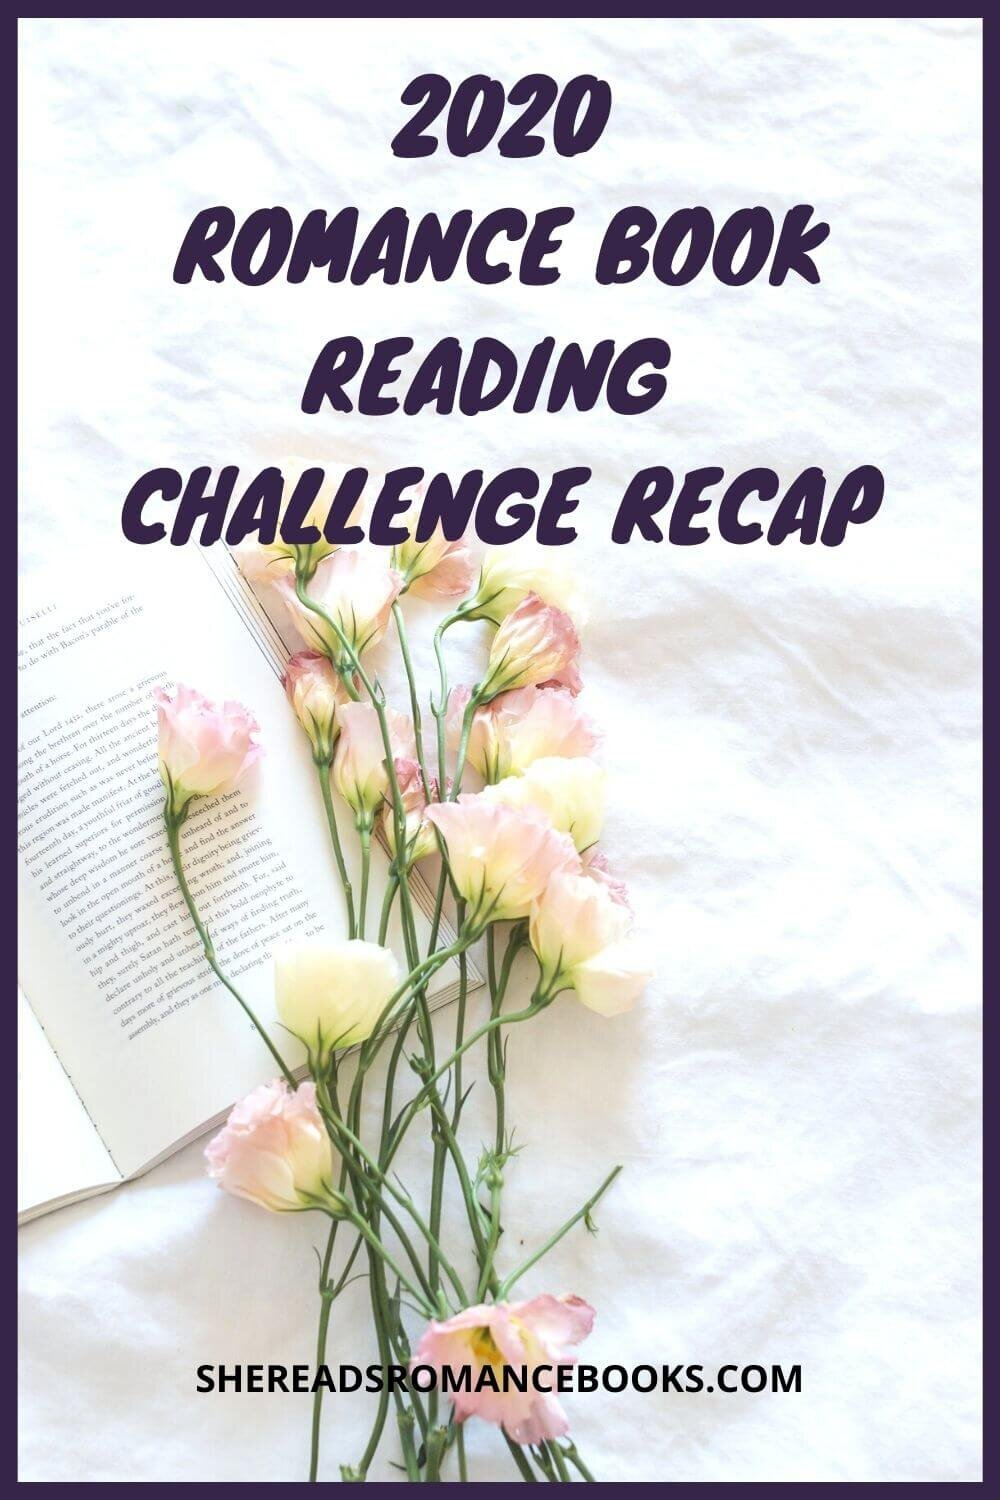 Romance book blogger, She Reads Romance Books gives a recap of this year's romance book reading challenge and reviews her book selections from the year.